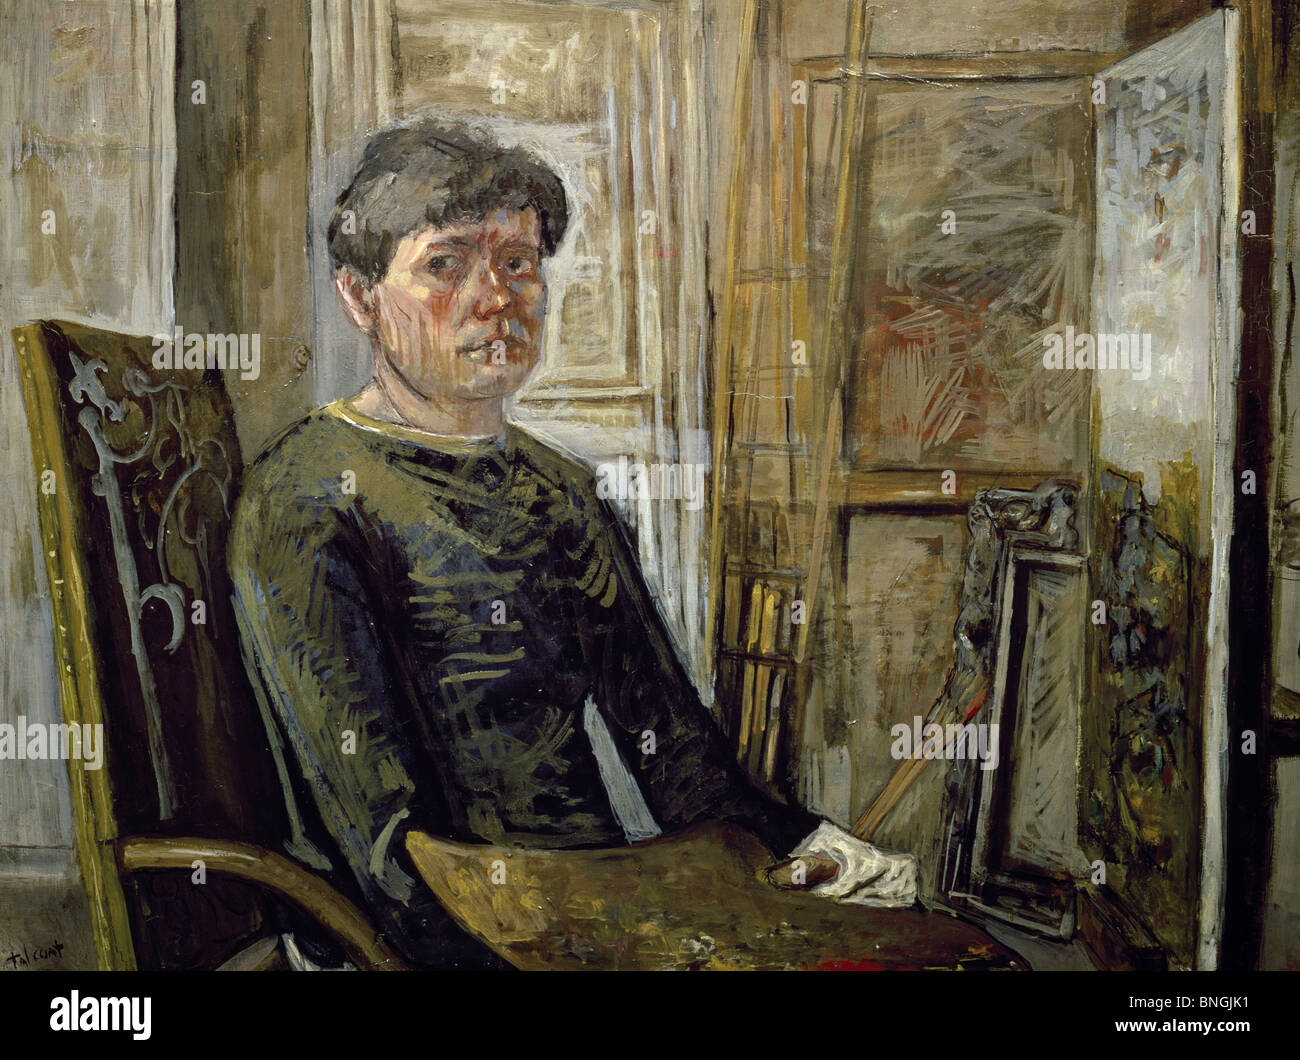 Self-portrait in an Armchair by Pierre Tal-Coat, 1936, (1905-1985) - Stock Image